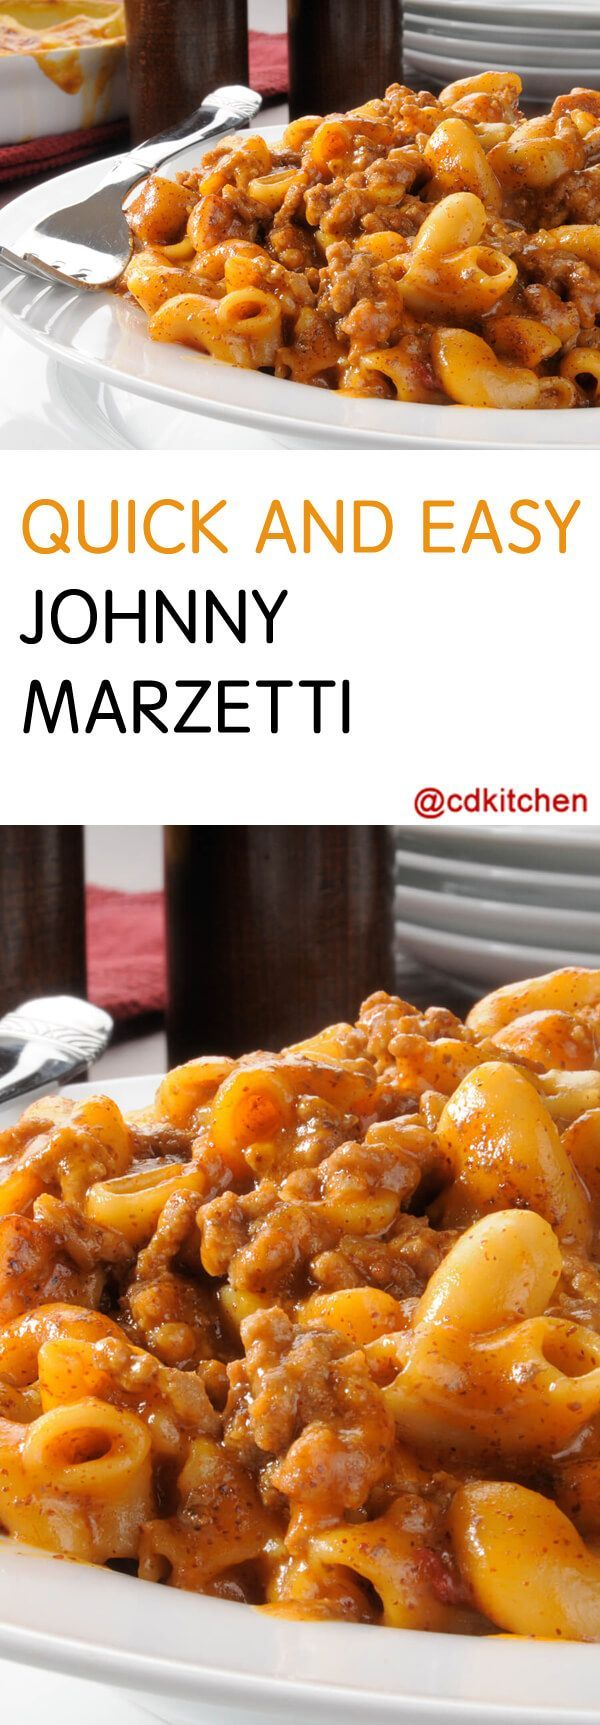 Quick and Easy Johnny Marzetti - Johnny Marzetti, aka goulash, is hamburger helper all grown up! A can of tomato soup brings deep tomato flavor to this comfort food pasta, and it's perfect with a little hot sauce for an extra kick.| CDKitchen.com